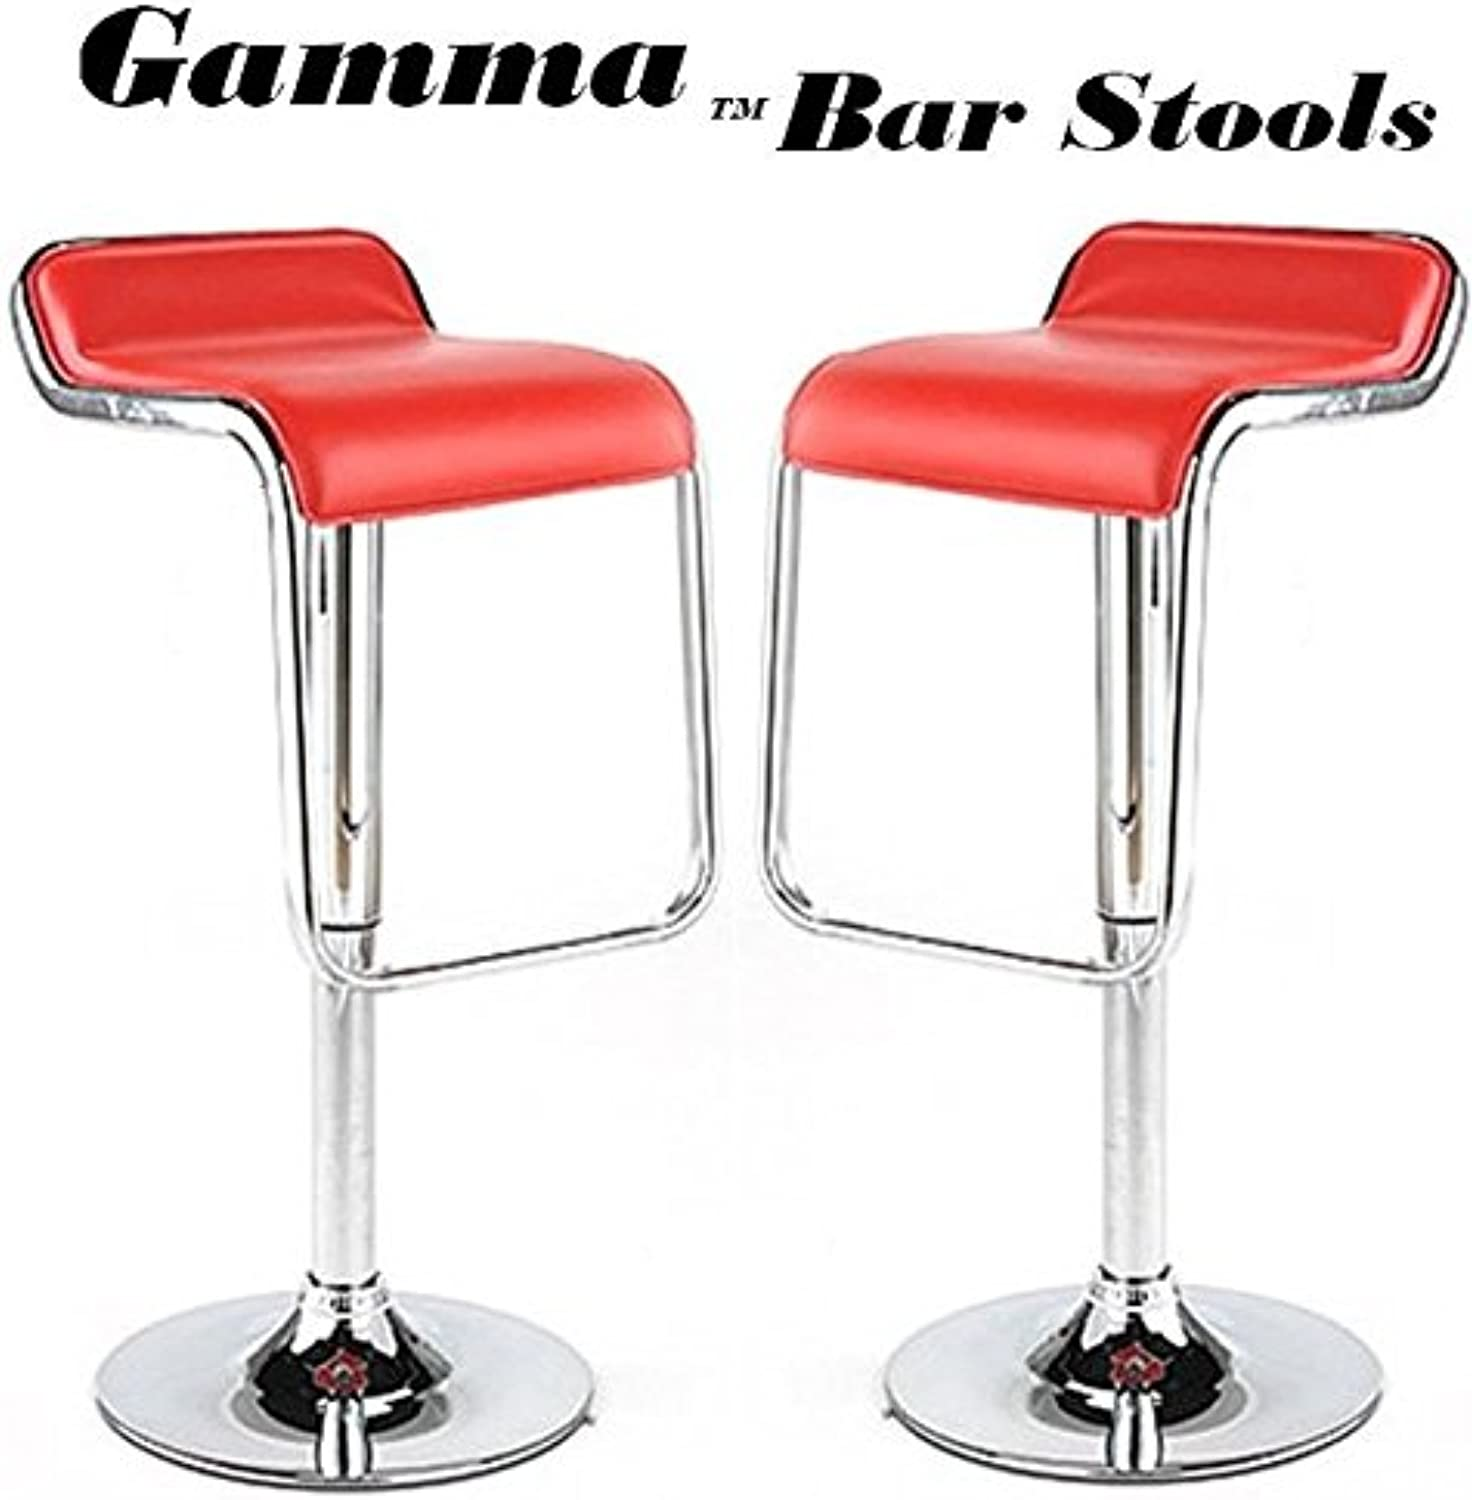 Gamma Adjustable Synthetic Leather Bar Stools - Bright Red (Set of 2)